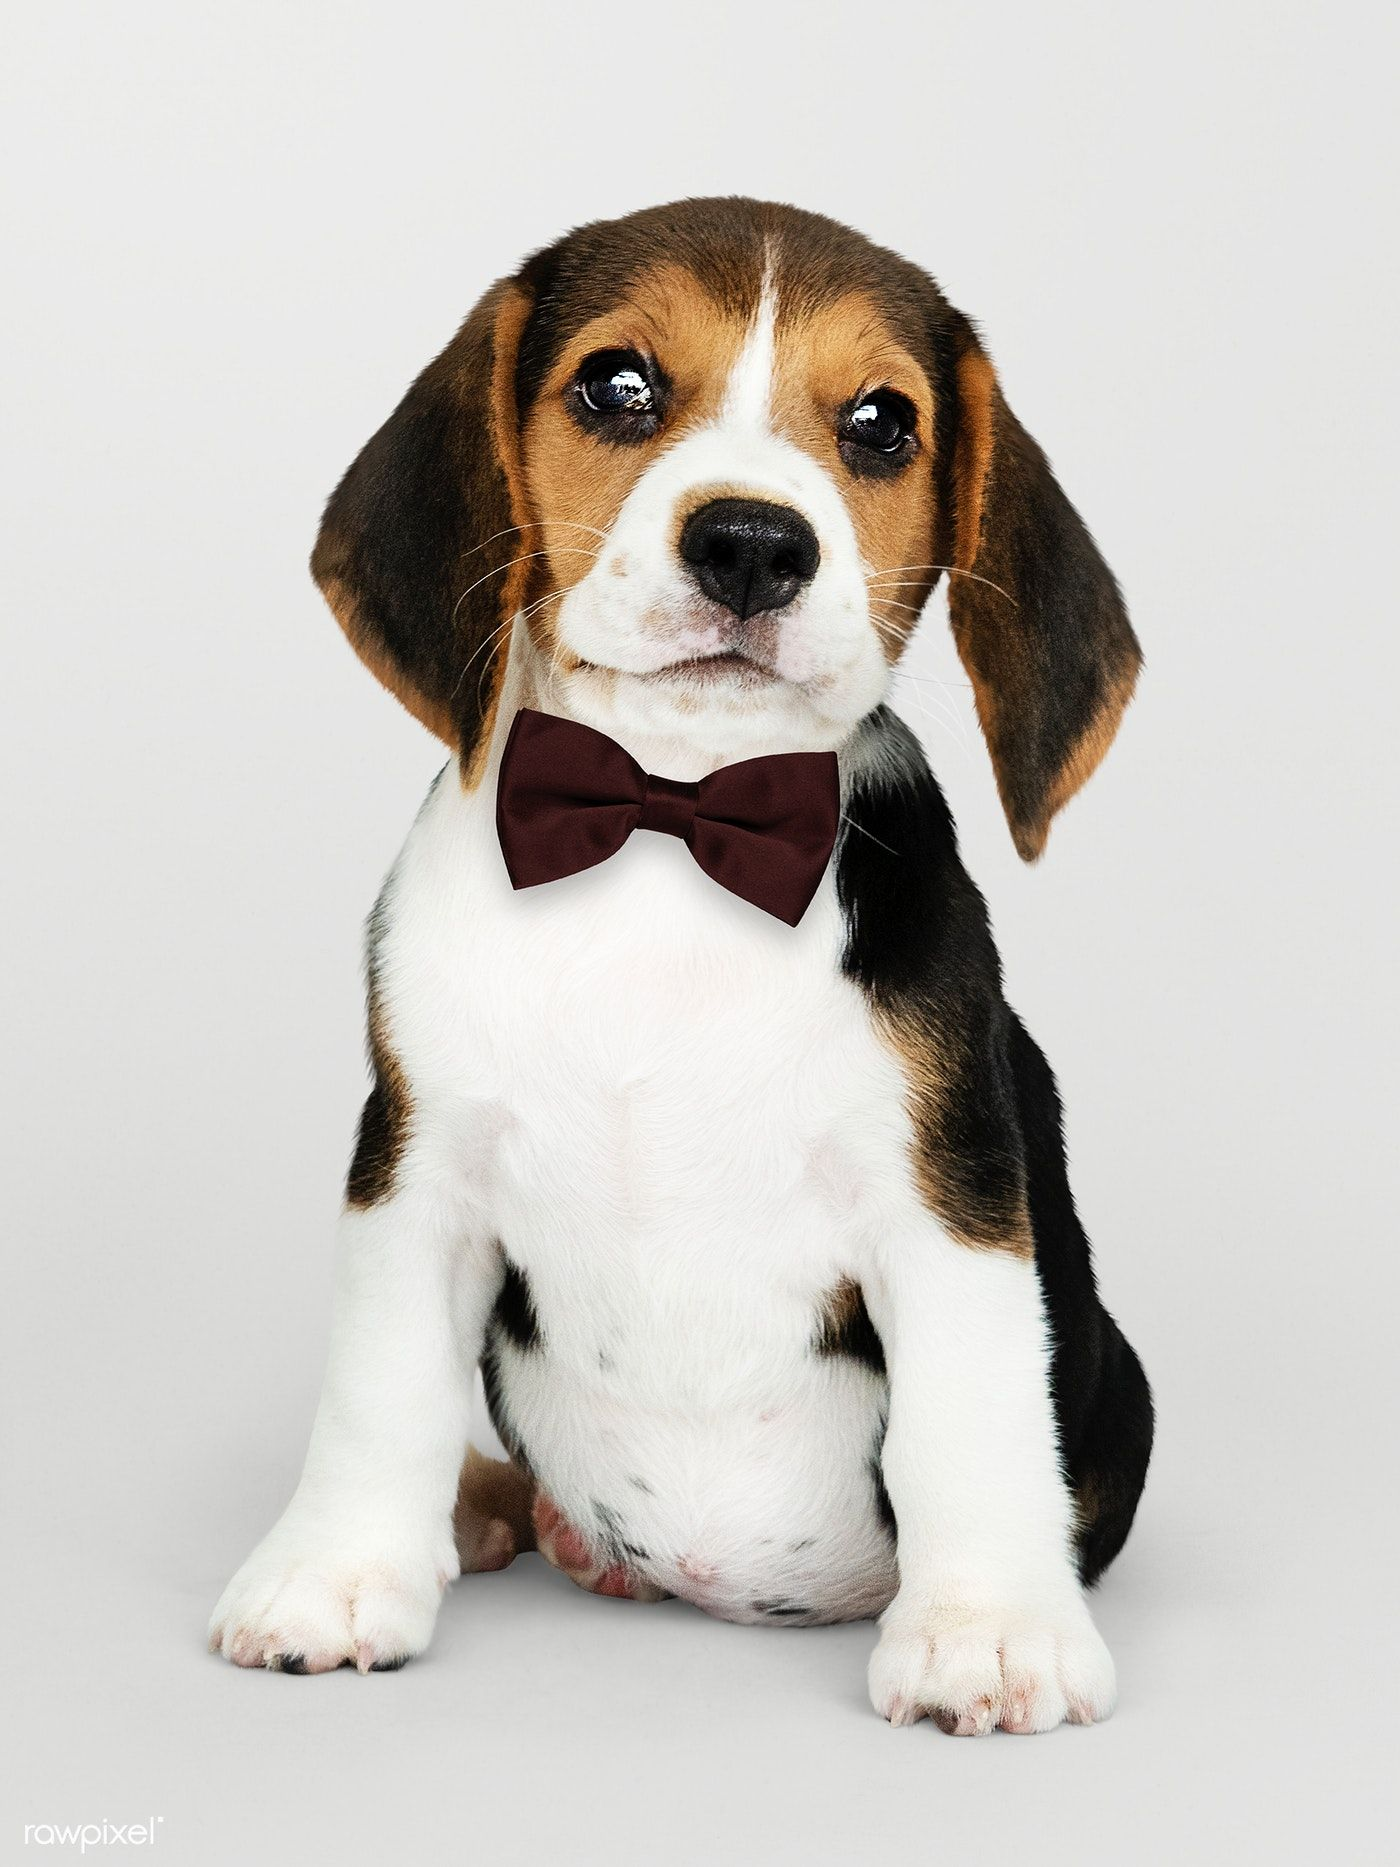 Download Premium Psd Of Cute Beagle In A Dark Brown Bow Tie 547756